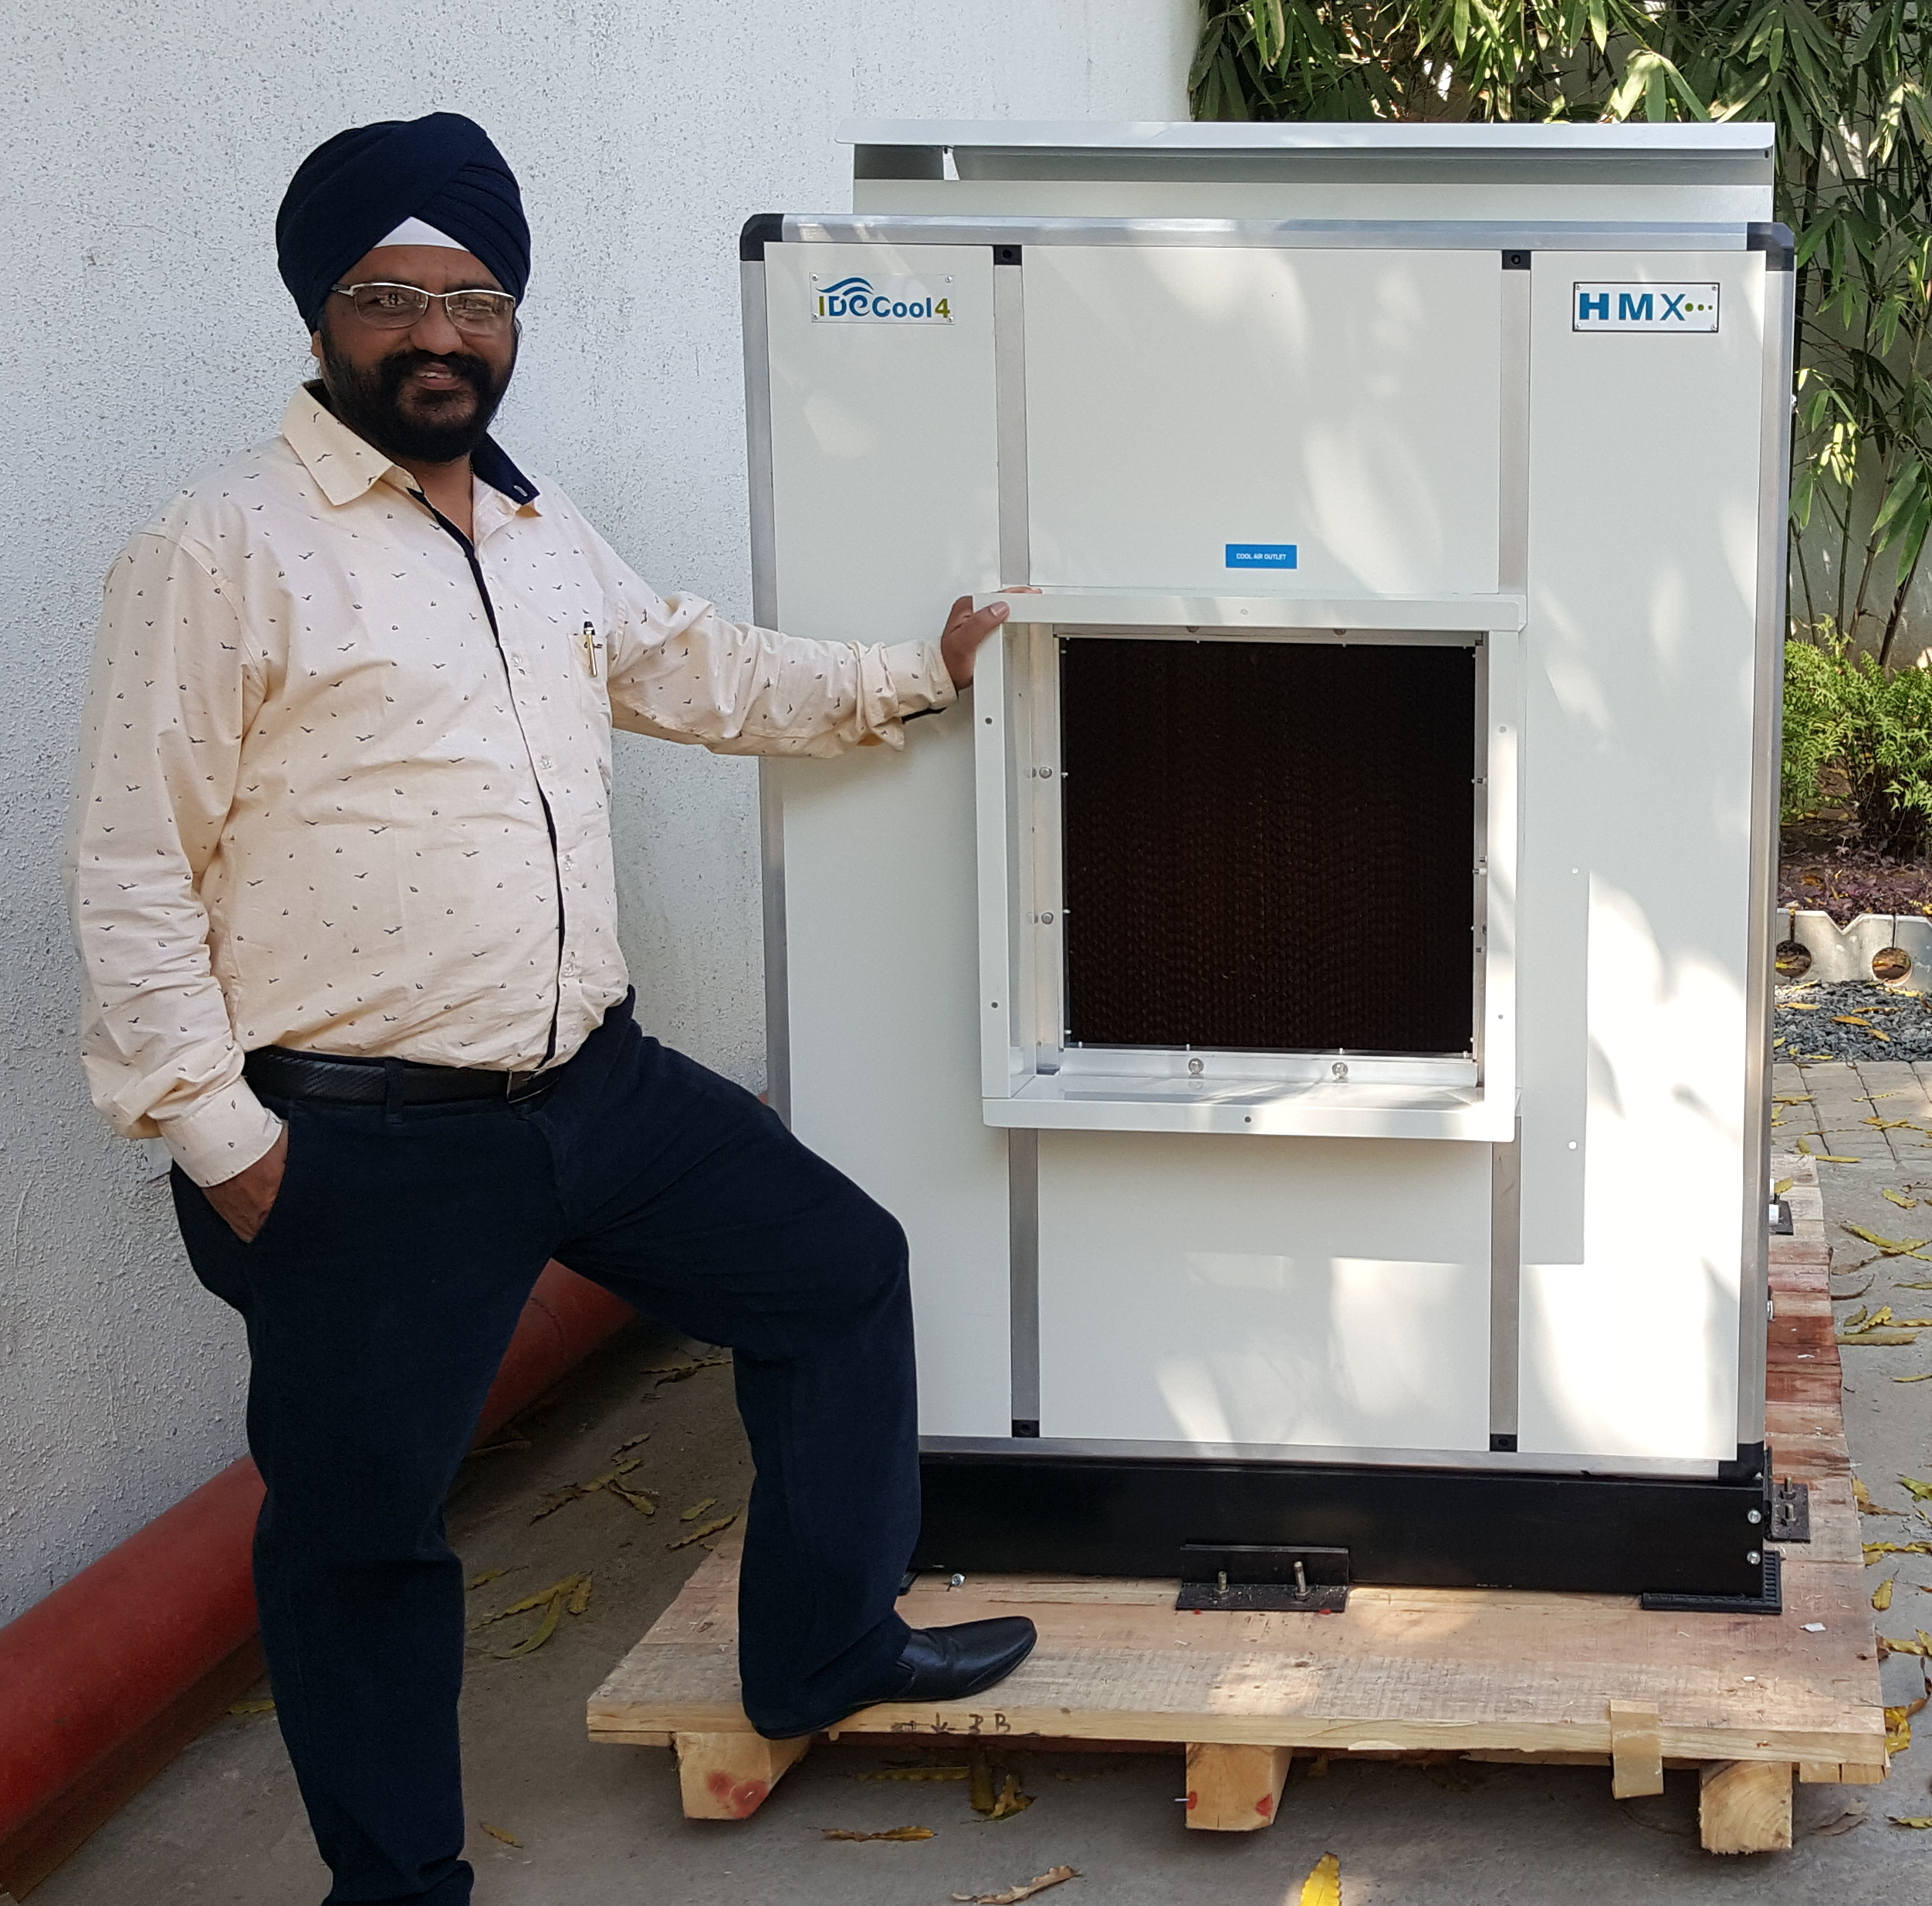 Mr Navneet Singh Bhasin, Multideal Corporation, Nagpur, the proud owner of the 1st IDECool unit